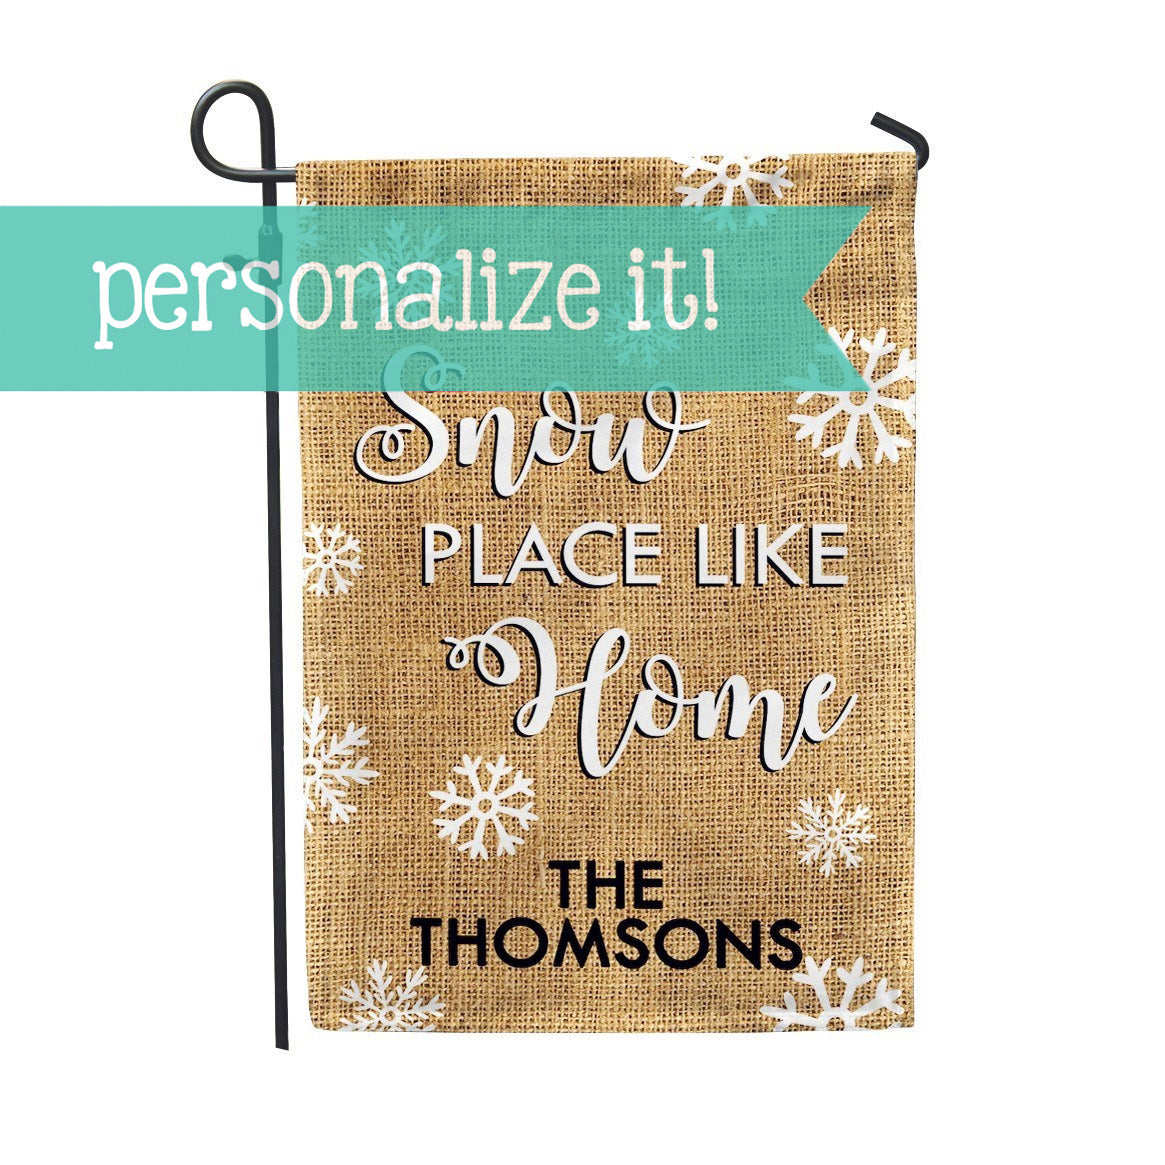 "Personalized Garden Flag - Snowplace like Home Custom Flag - 12"" x 18"" - Second East"